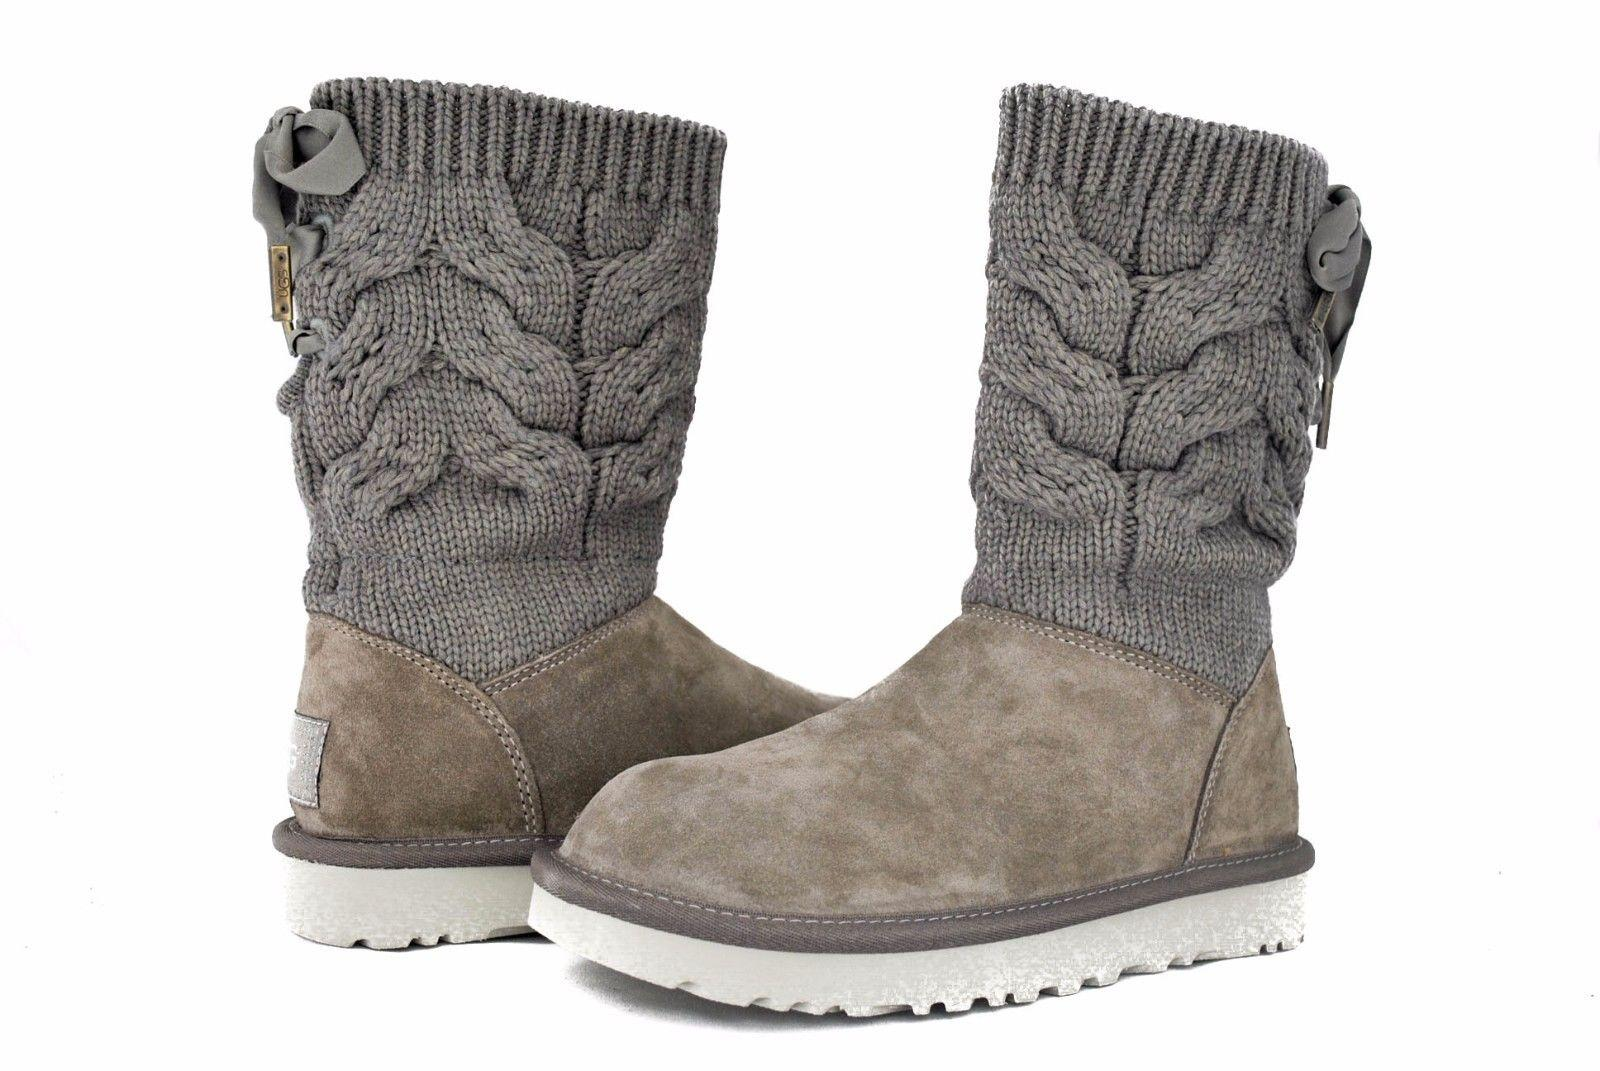 Women's Willow 1019059 Ugg 8 Us Size Australia Kiandra Bootsbooties 7qSwES